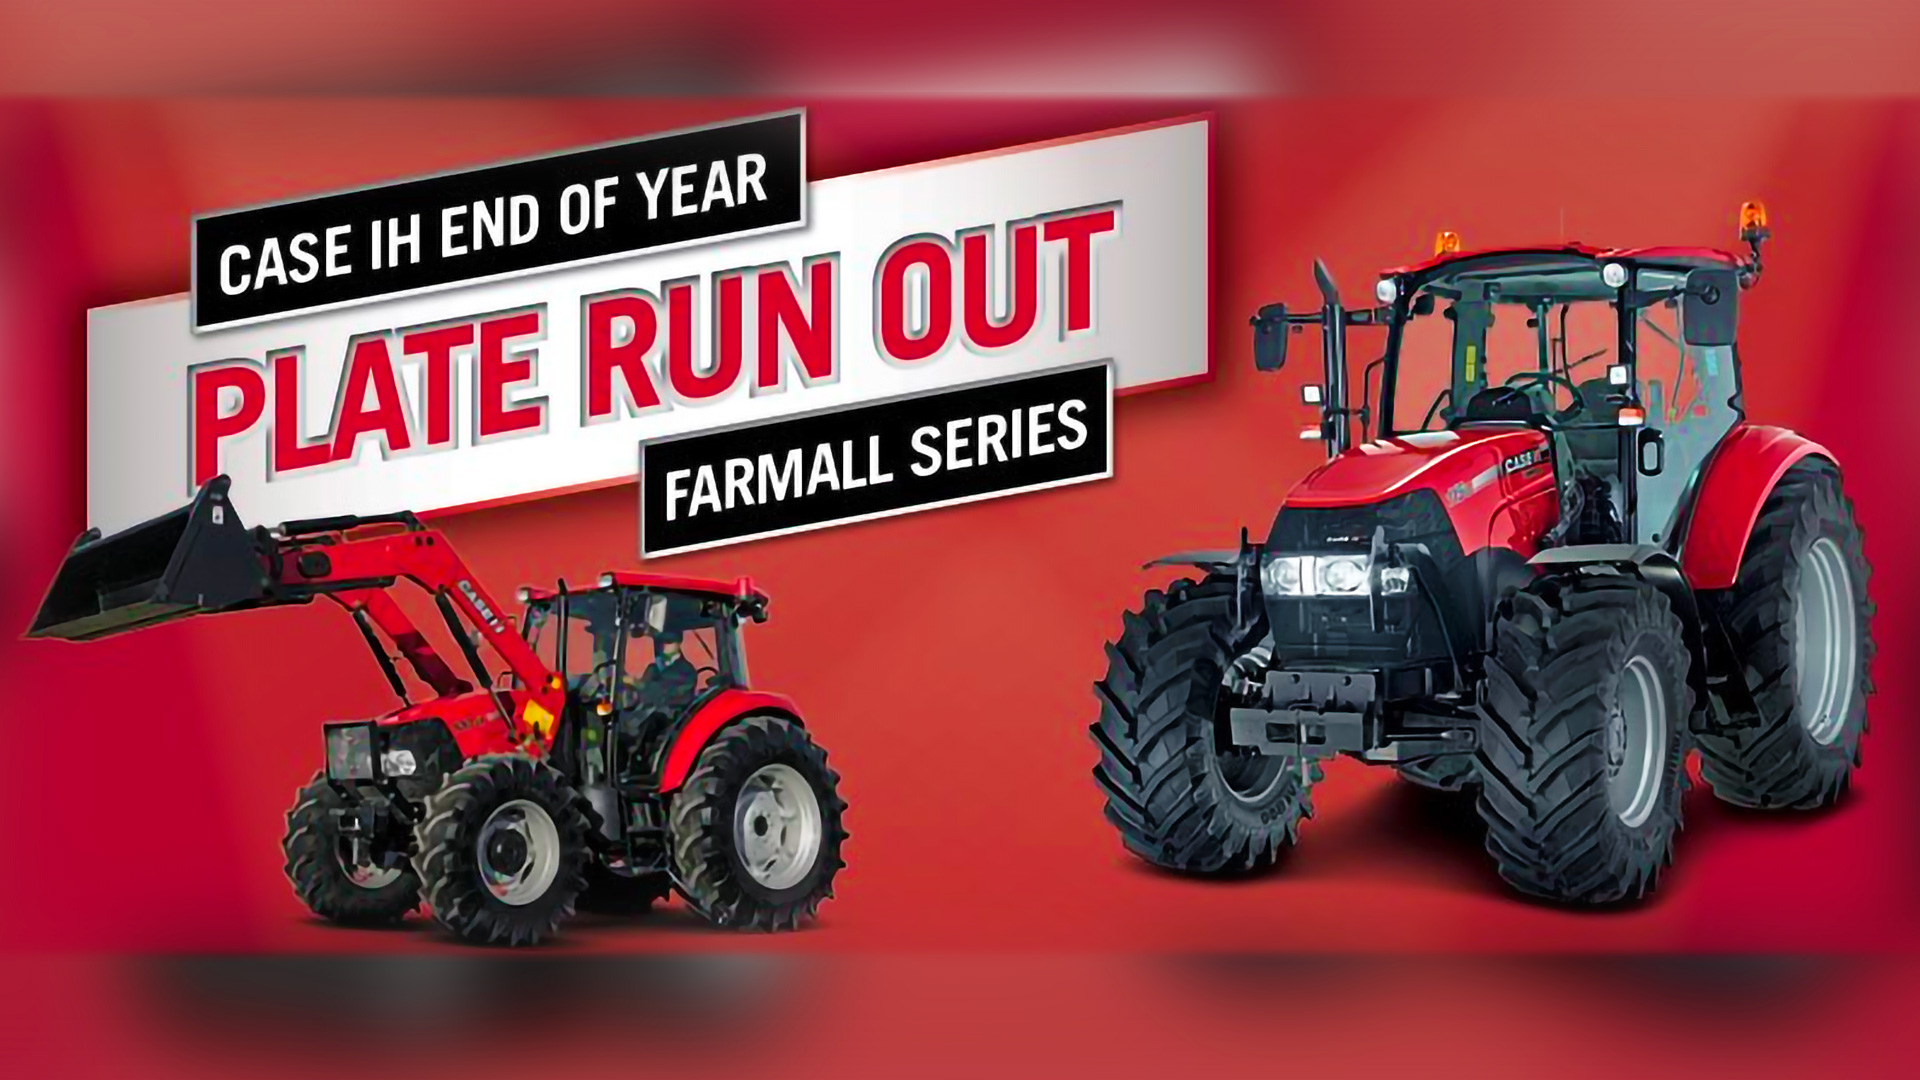 Case IH EOFY Plate Run Out Farmall Series